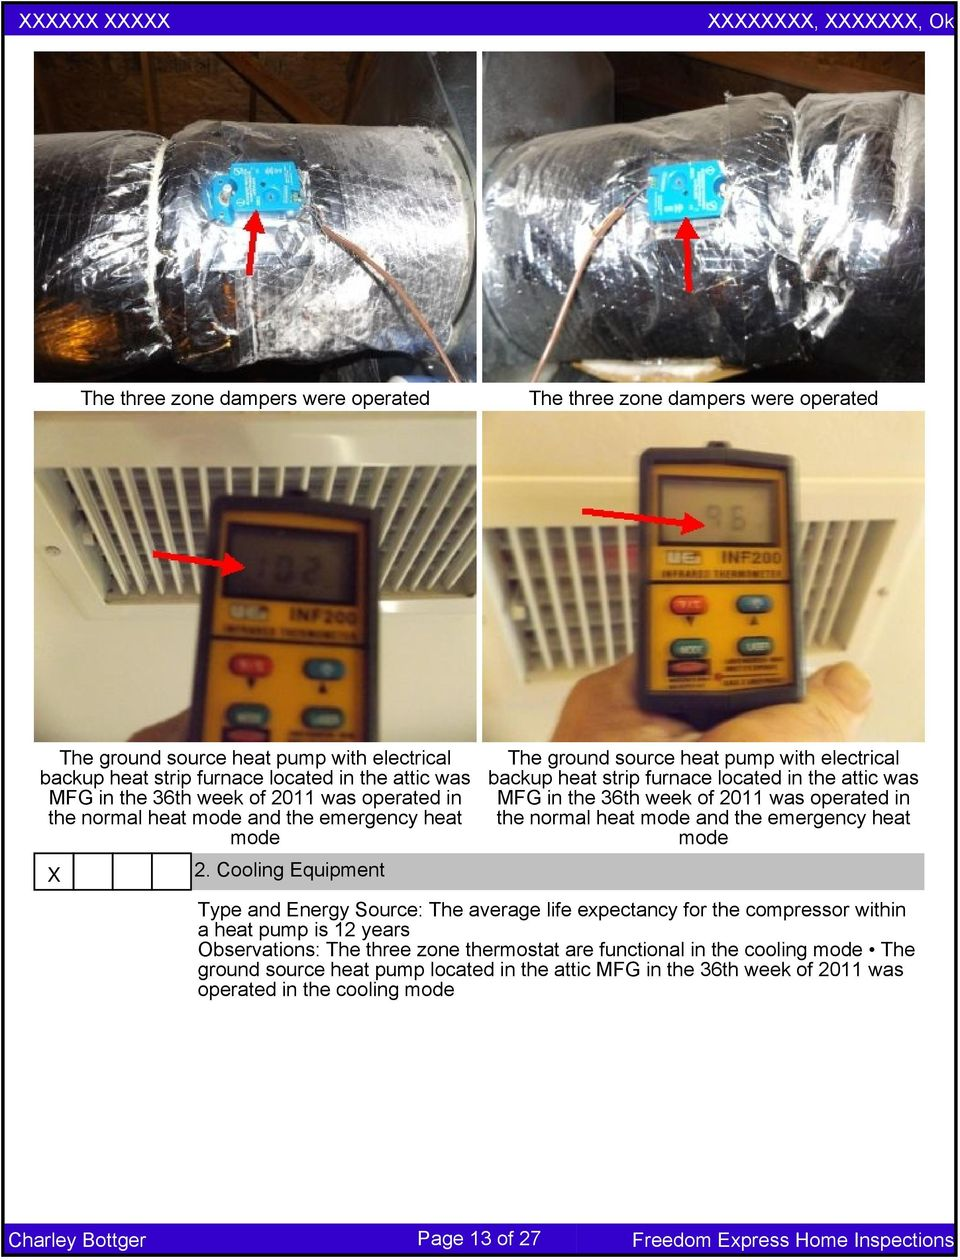 Cooling Equipment The ground source heat pump with electrical backup heat strip furnace located in the attic was MFG in the 36th week of 2011 was operated in the normal heat mode and the